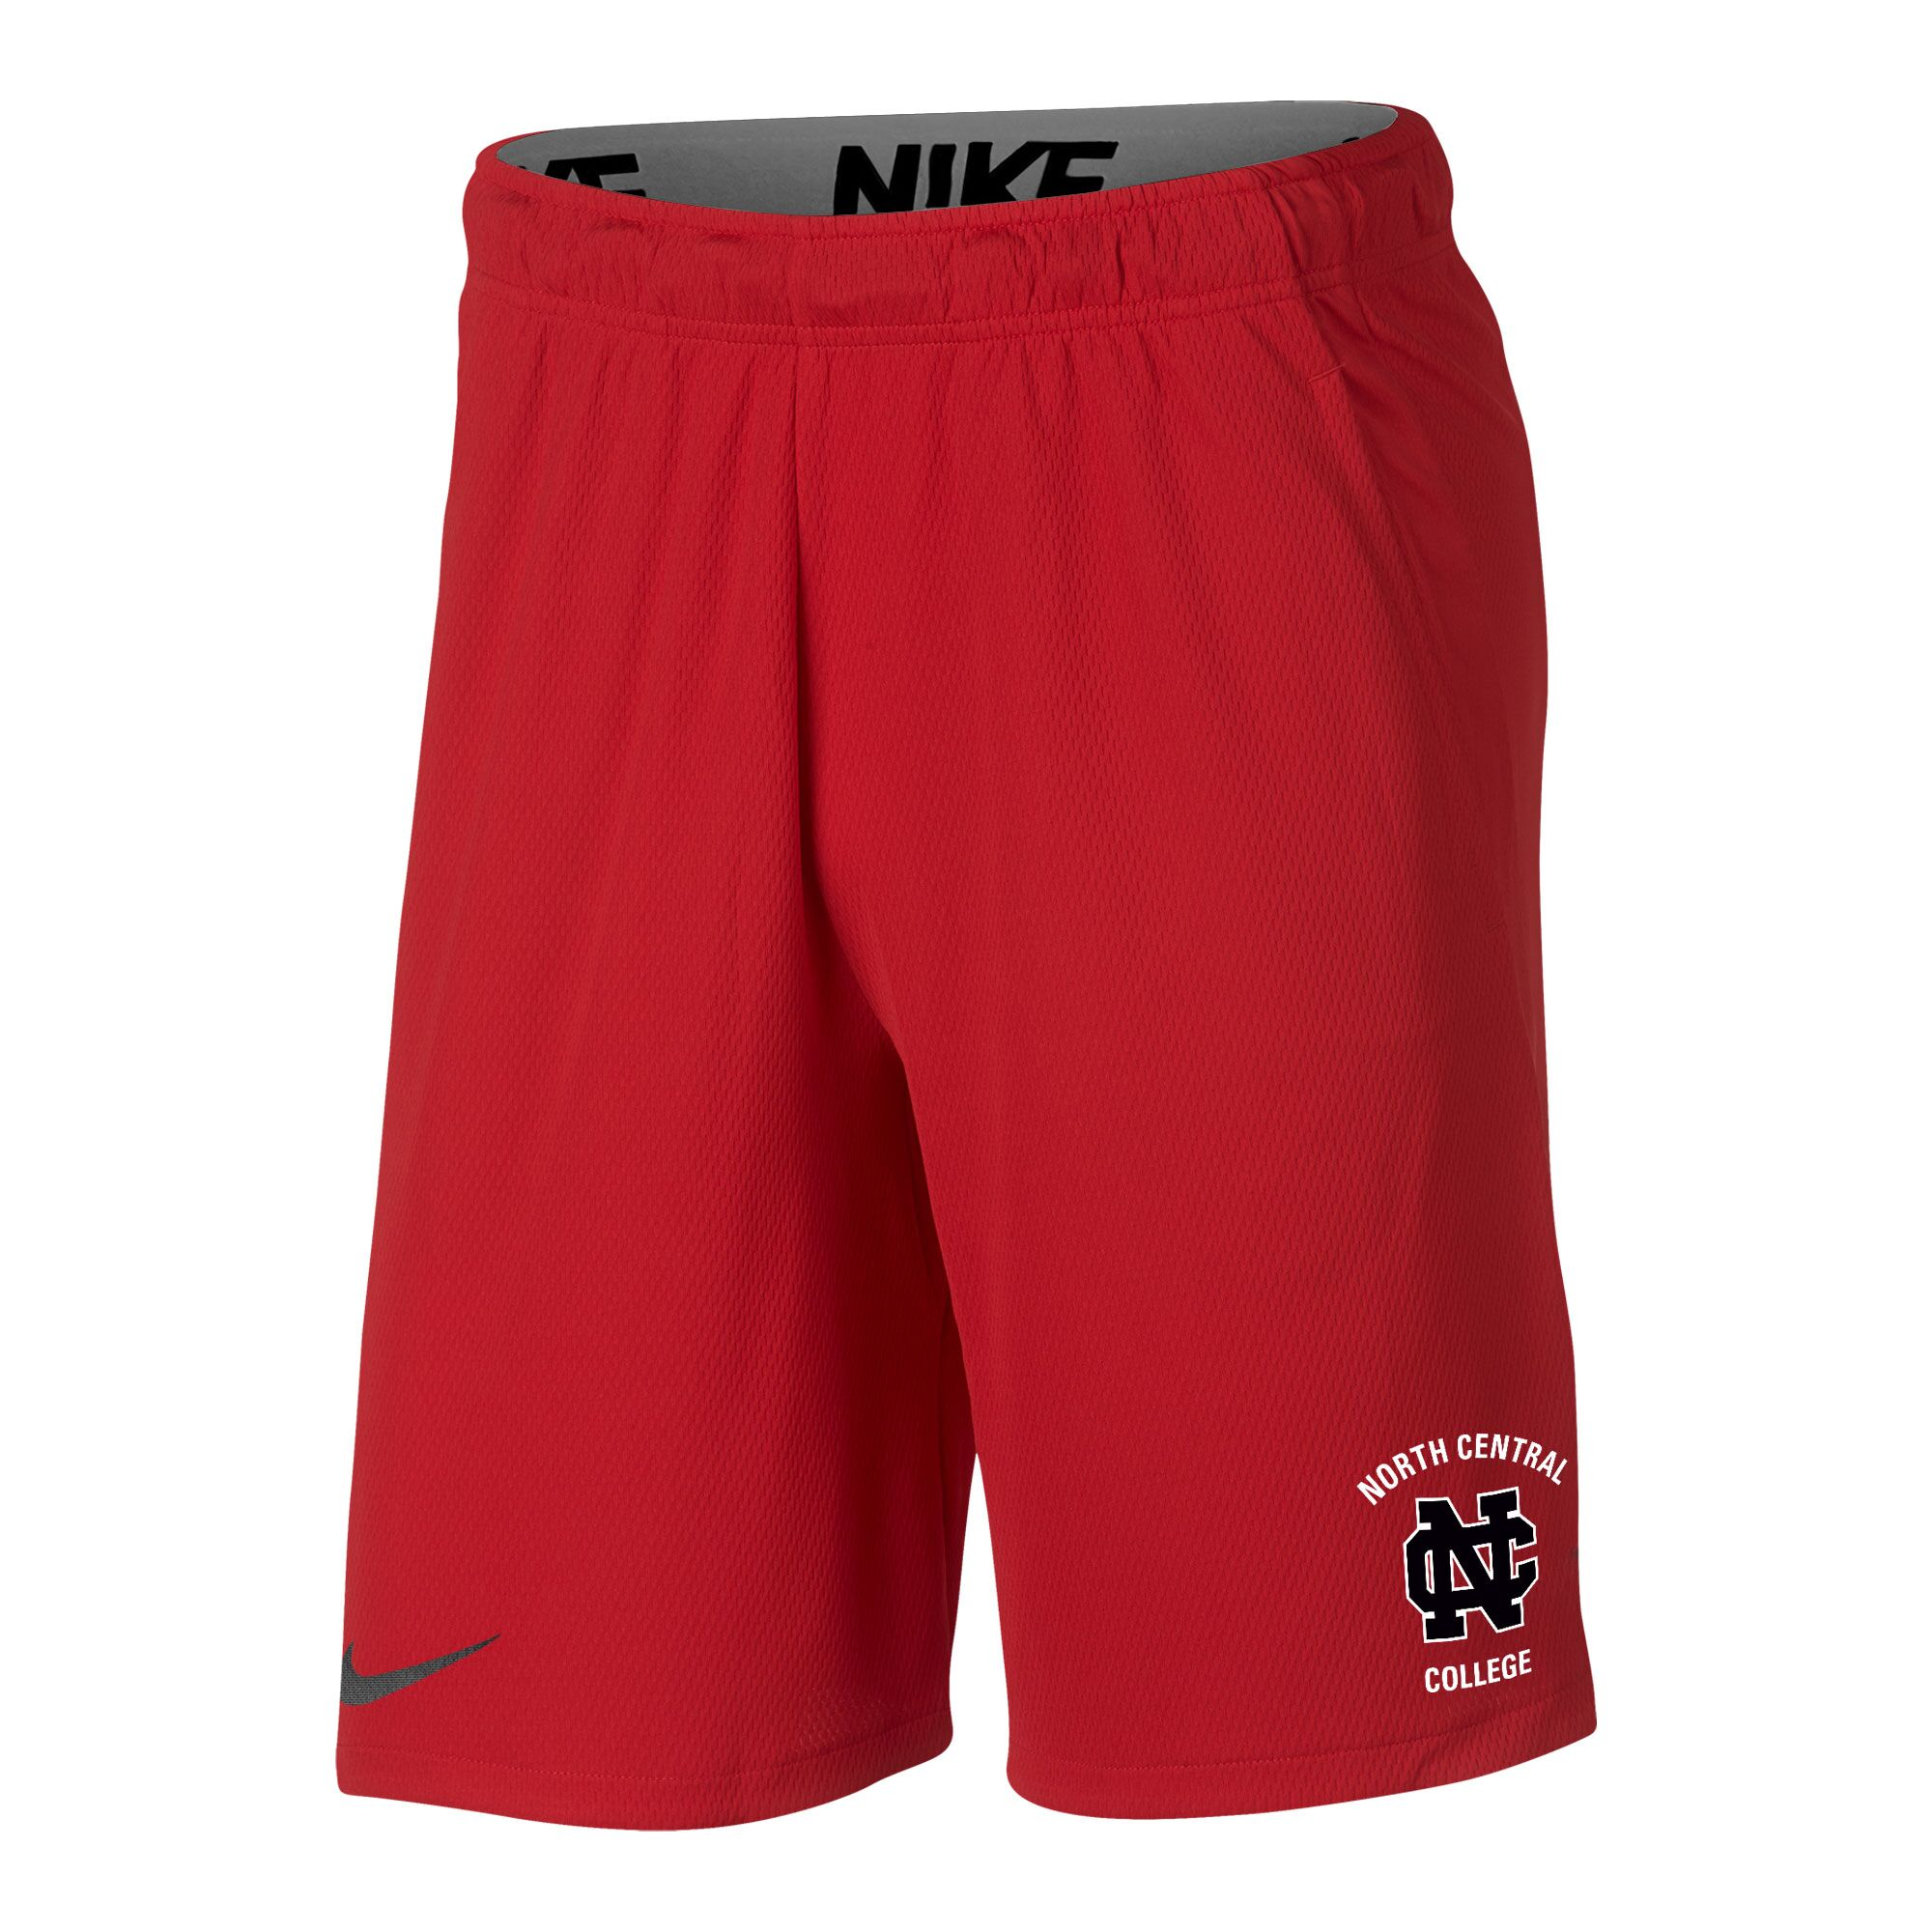 Image for the Hype Shorts by Nike product